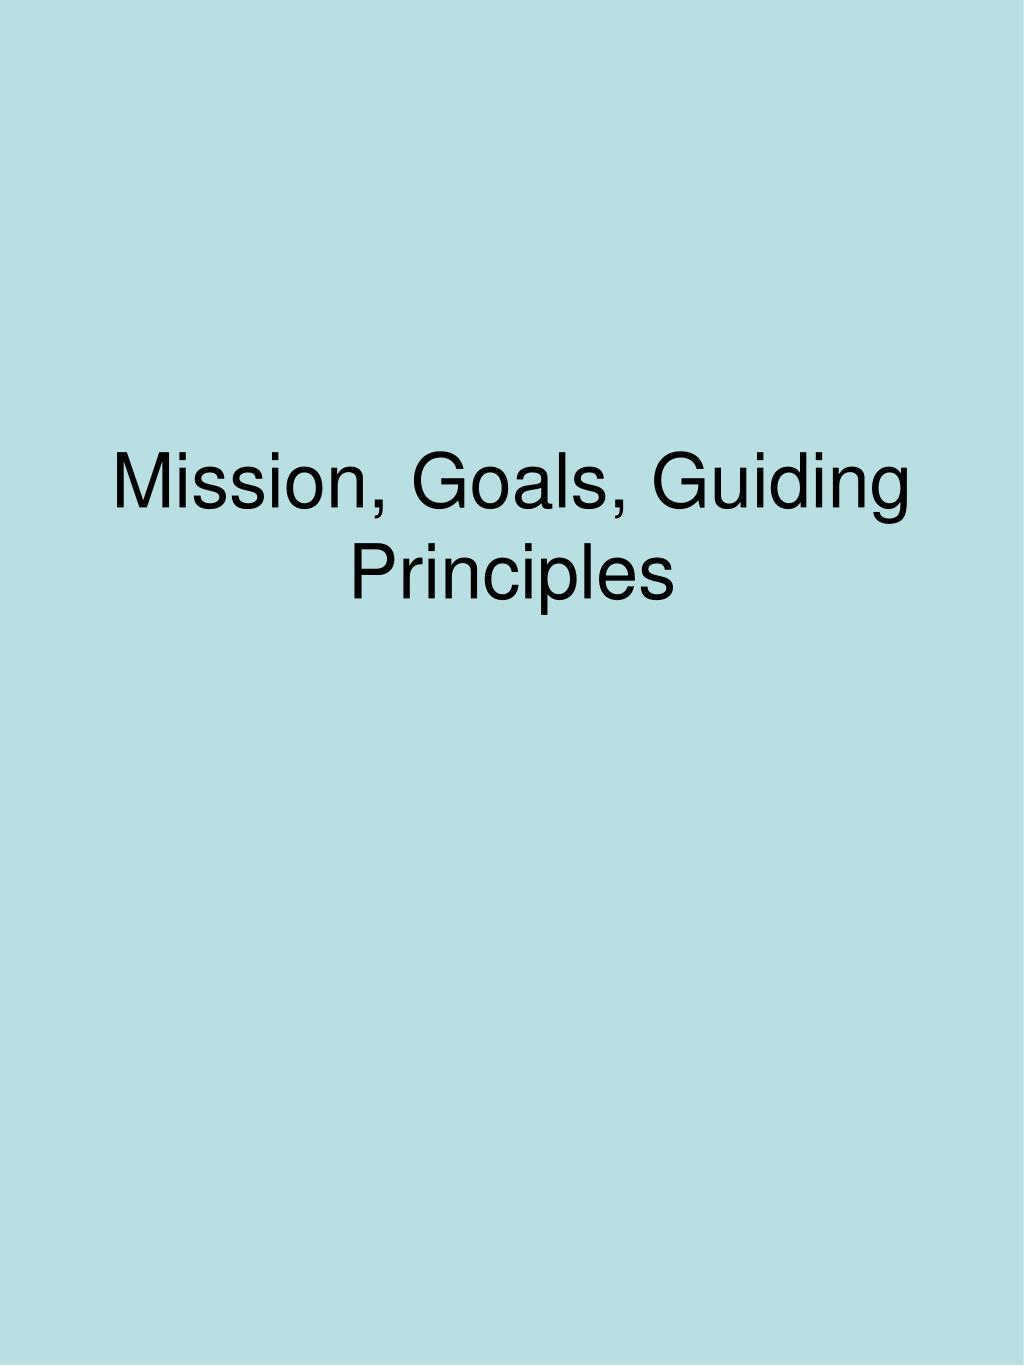 Mission, Goals, Guiding Principles